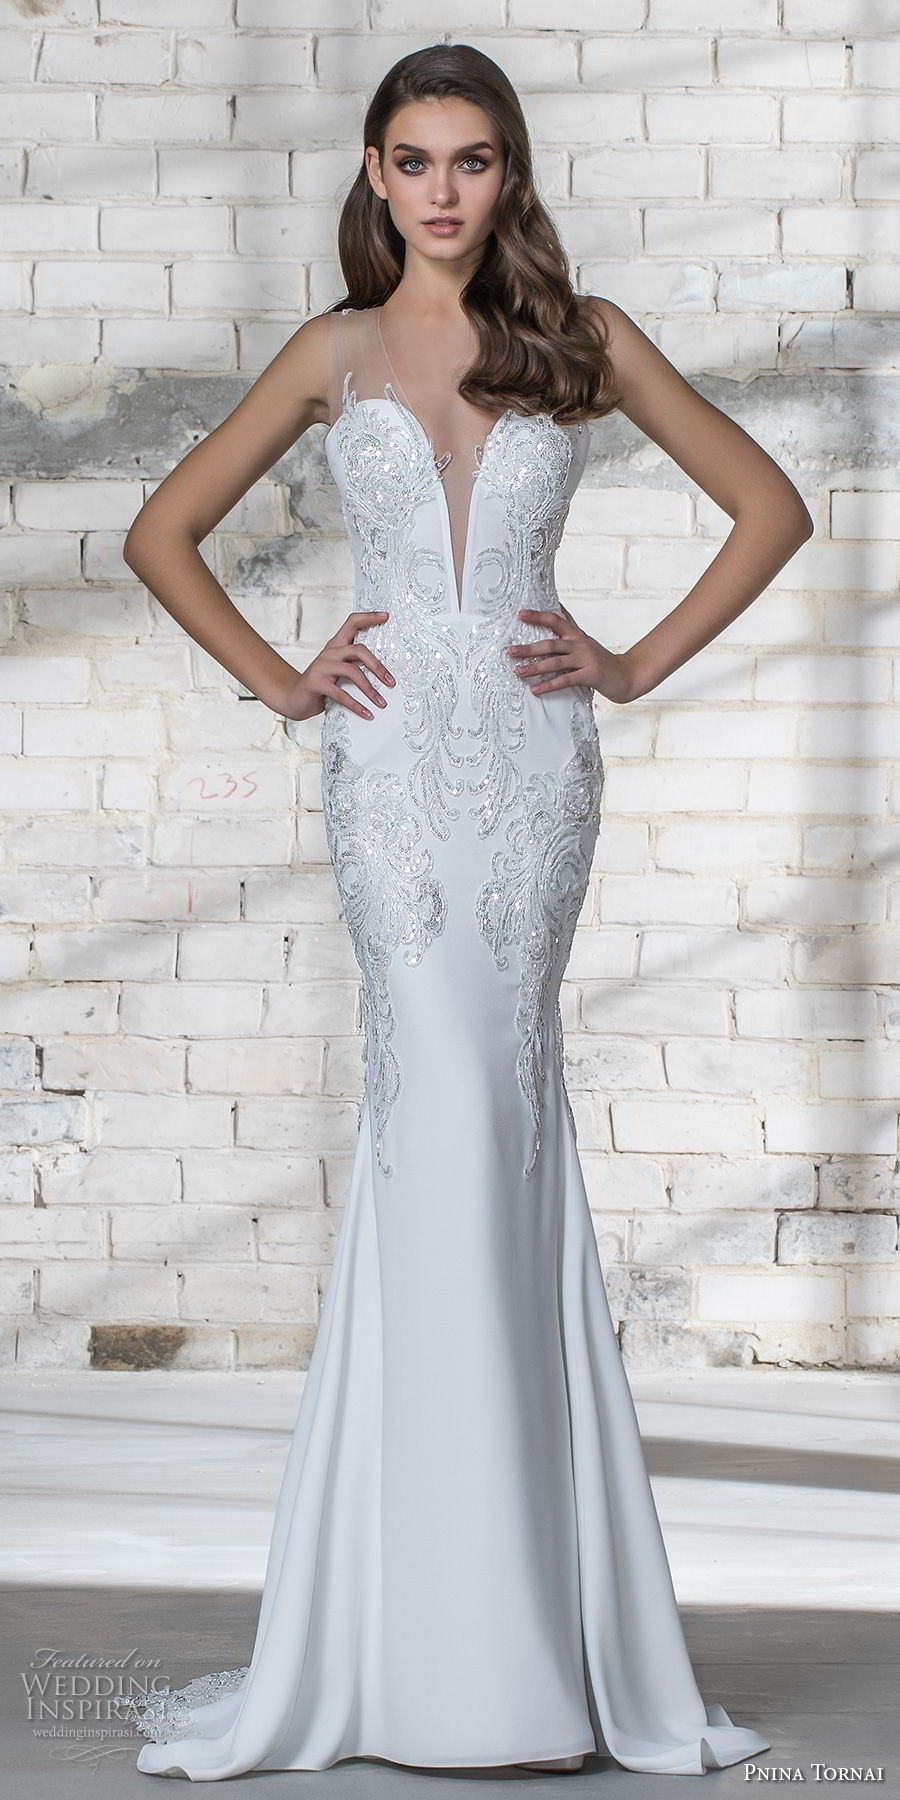 pnina tornai 2019 love bridal strapless deep plunging sweetheart neckline heavily embellished bodice glitzy romantic elegant sheath wedding dress sheer lace back chapel train (1) mv